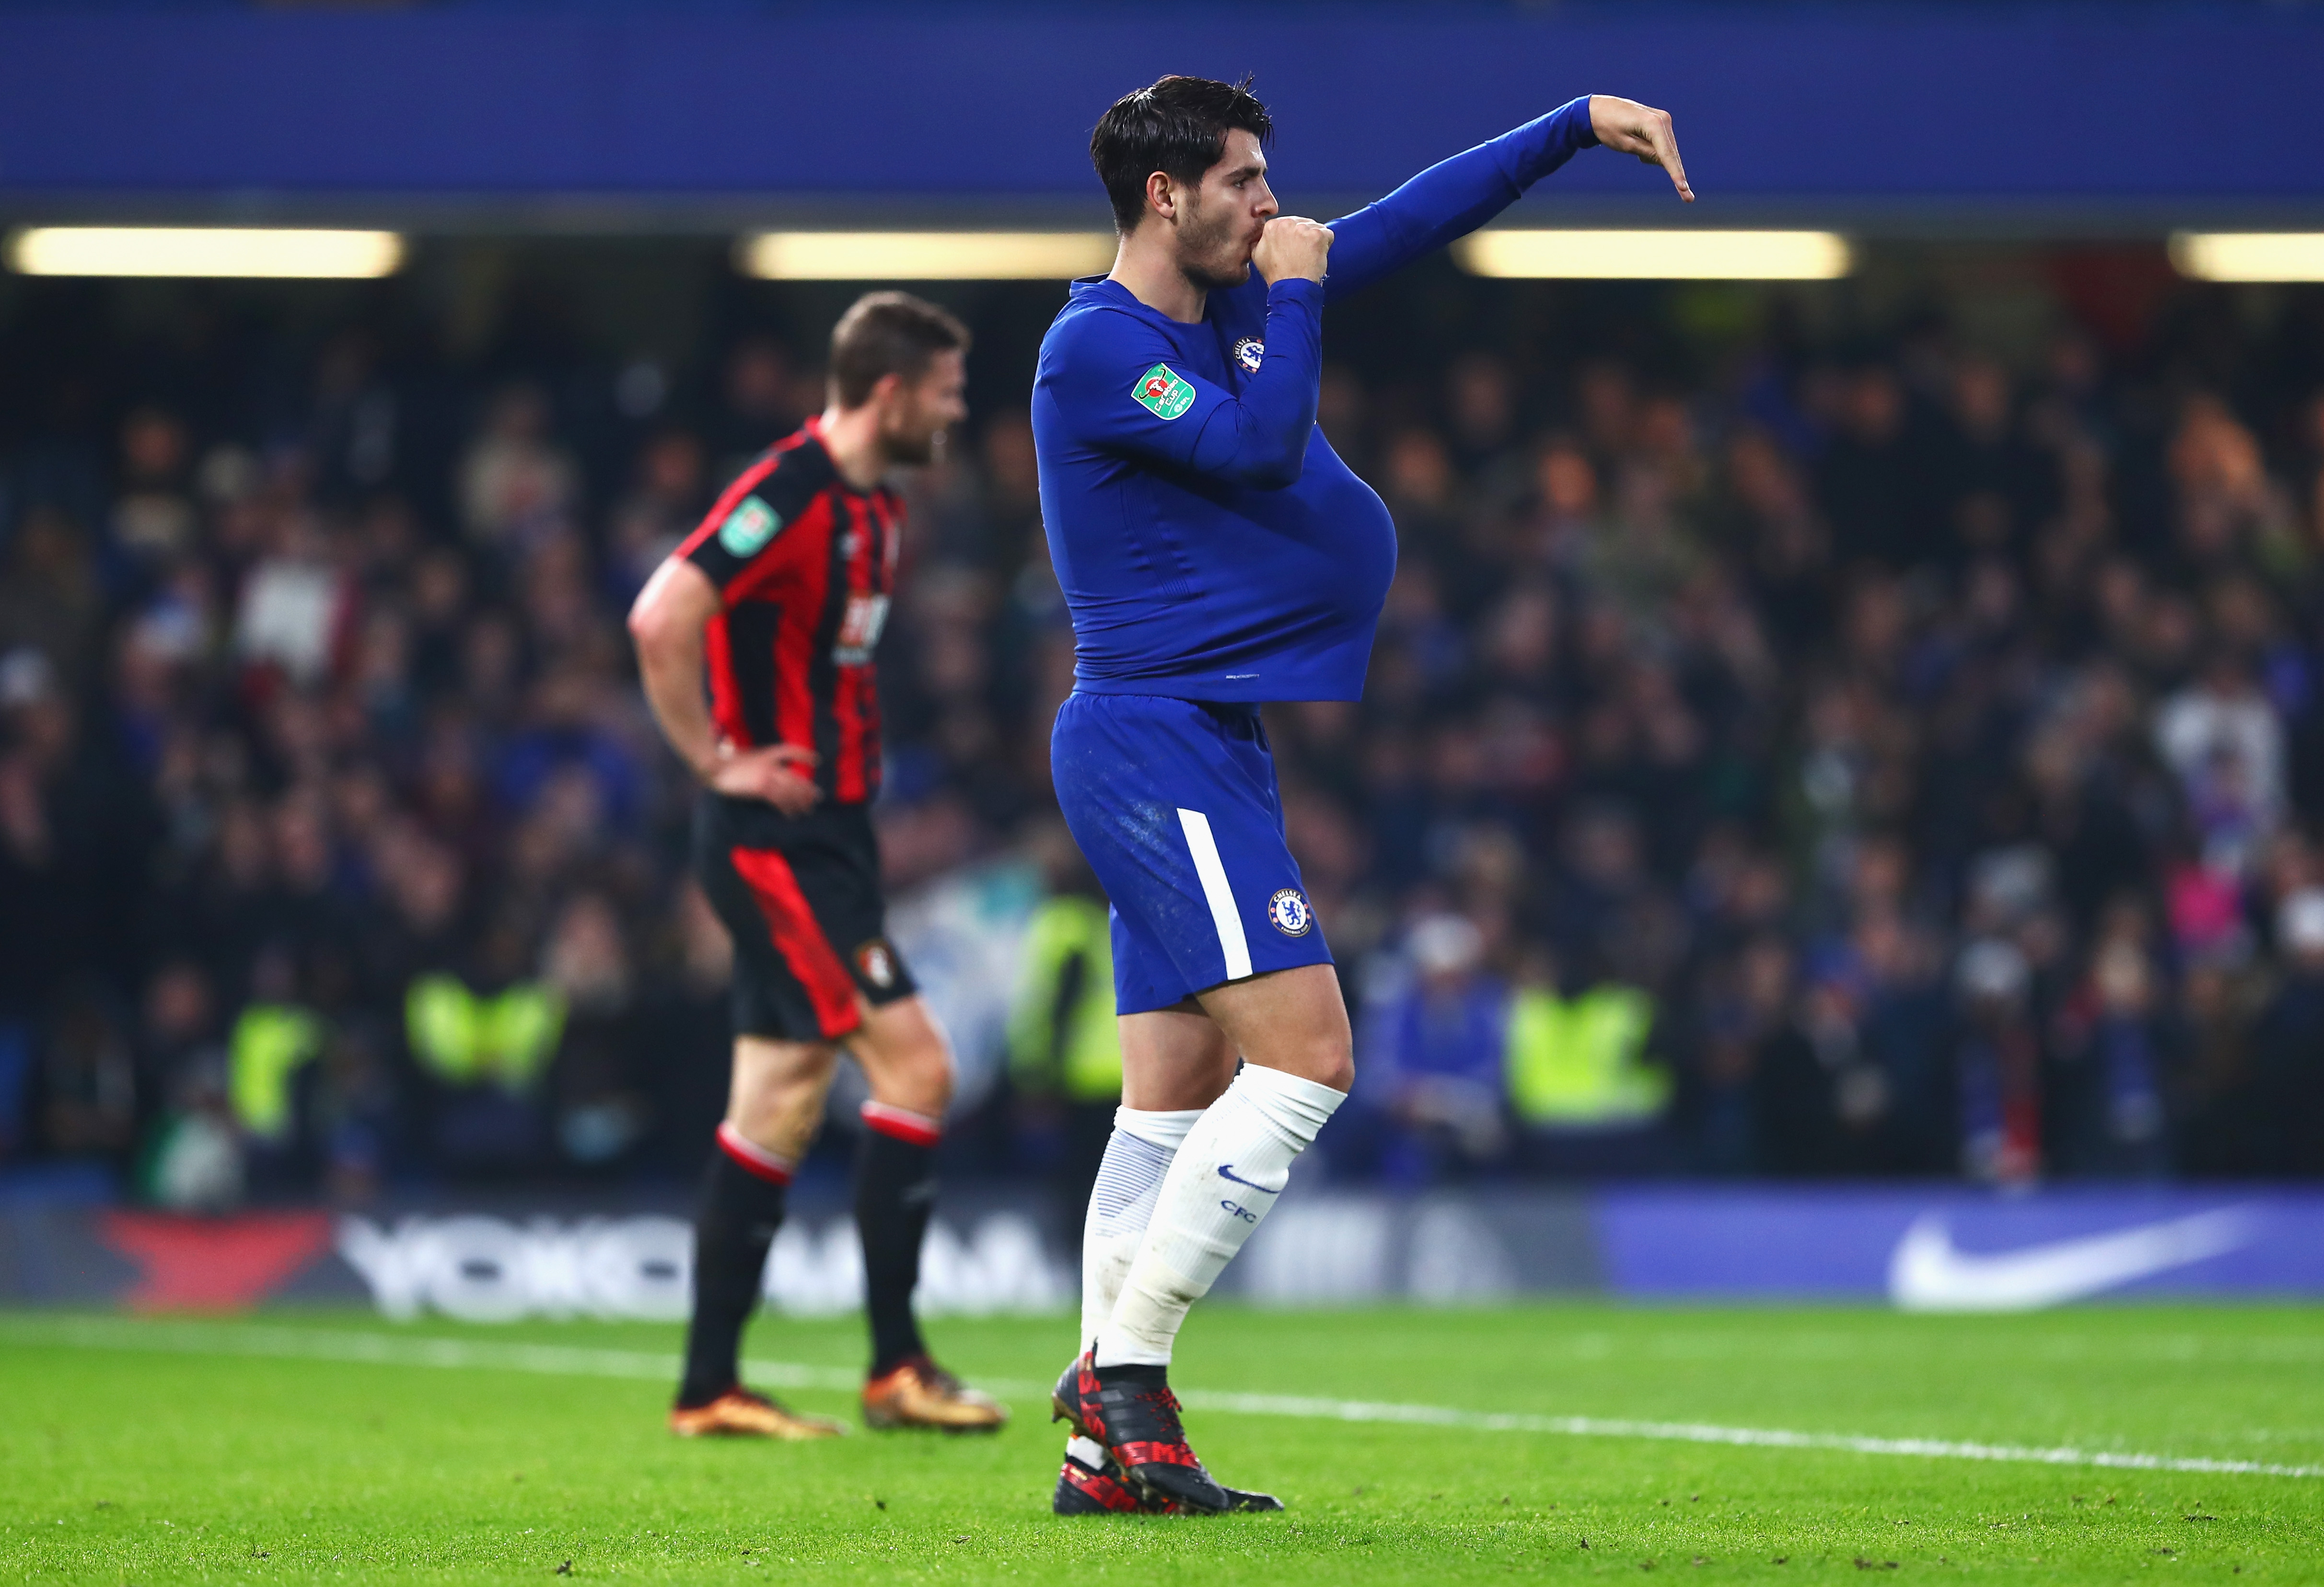 Chelsea have to stay focused amid rumours, says Conte